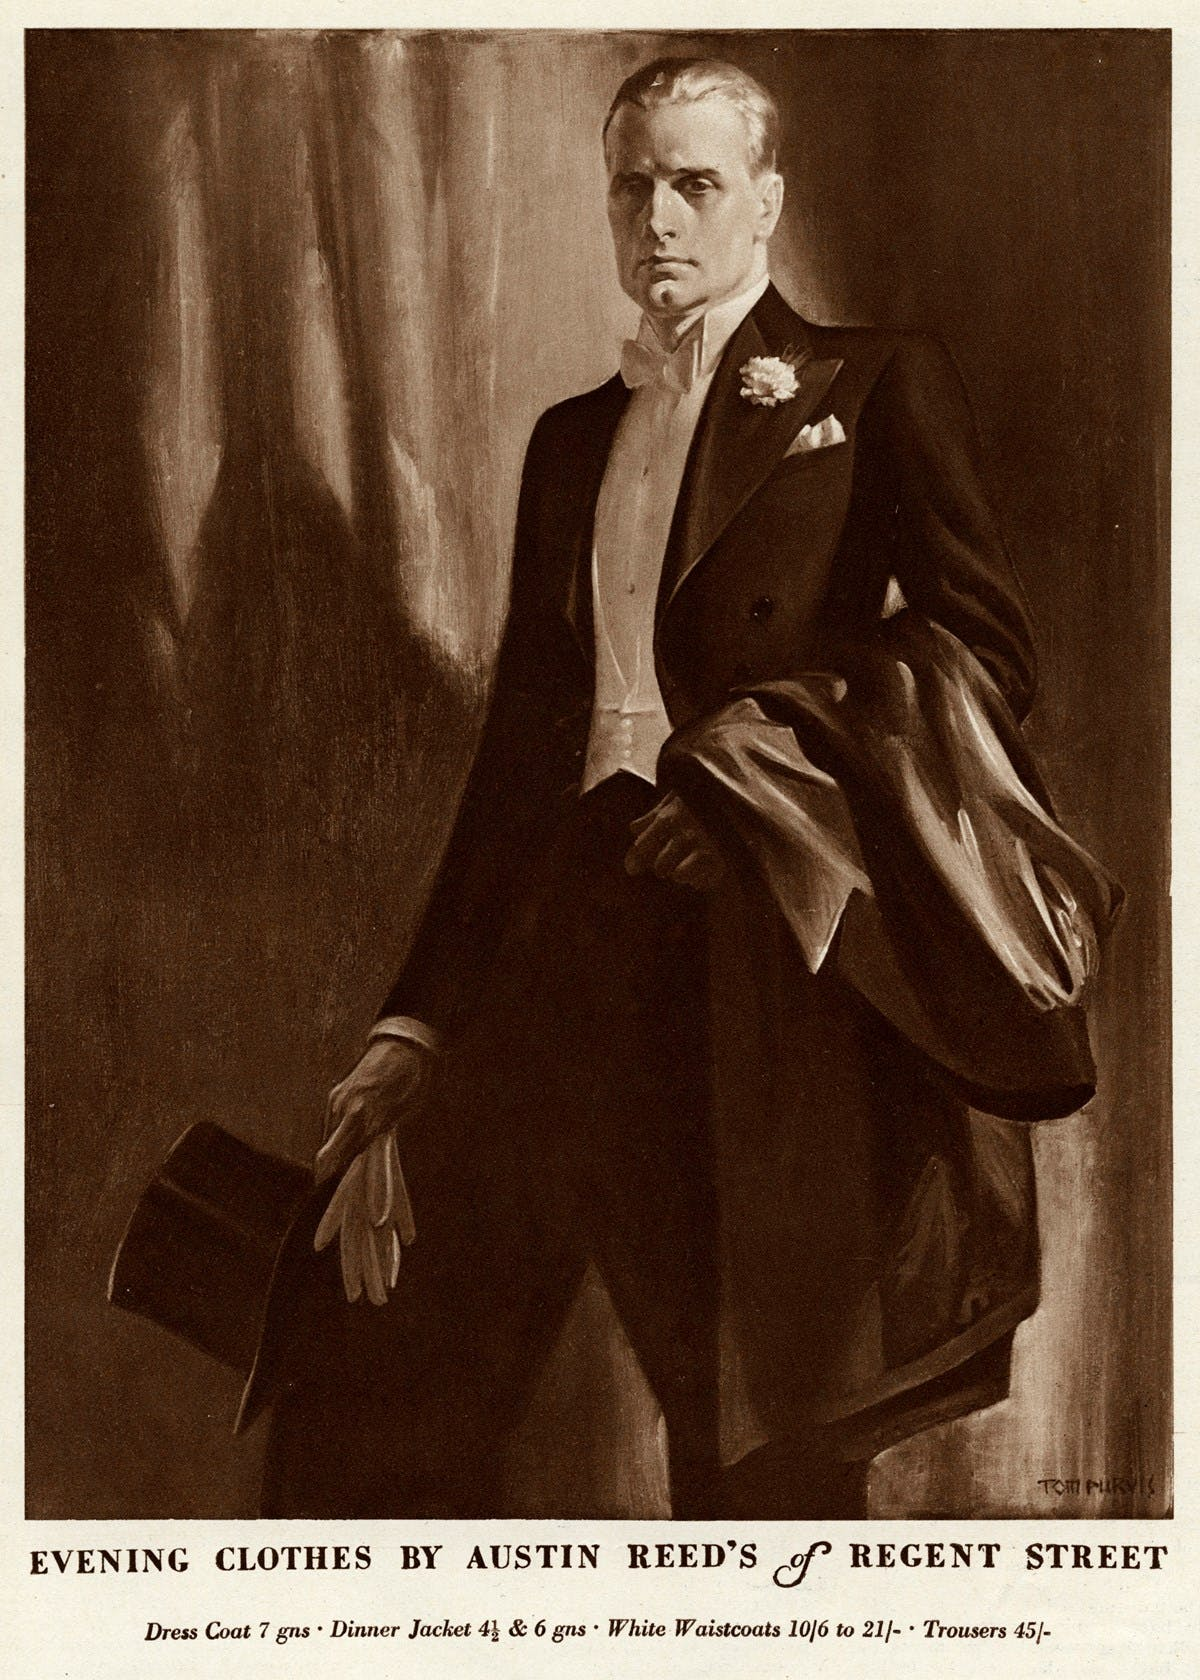 "A full page illustrated advert. It shows a gentleman wearing fine evening clothes - a suit, waistcoat, shirt, and bowtie, with fine evening gloves and a top hat. Beneath the illustration text says ""EVENING CLOTHES BY AUSTIN REED'S of REGENT STREET Dress Coat 7 gns Dinner Jacket 4 1/2 & 6 gns White Waistcoats 10/6 to 21/- Trousers 45/-"""